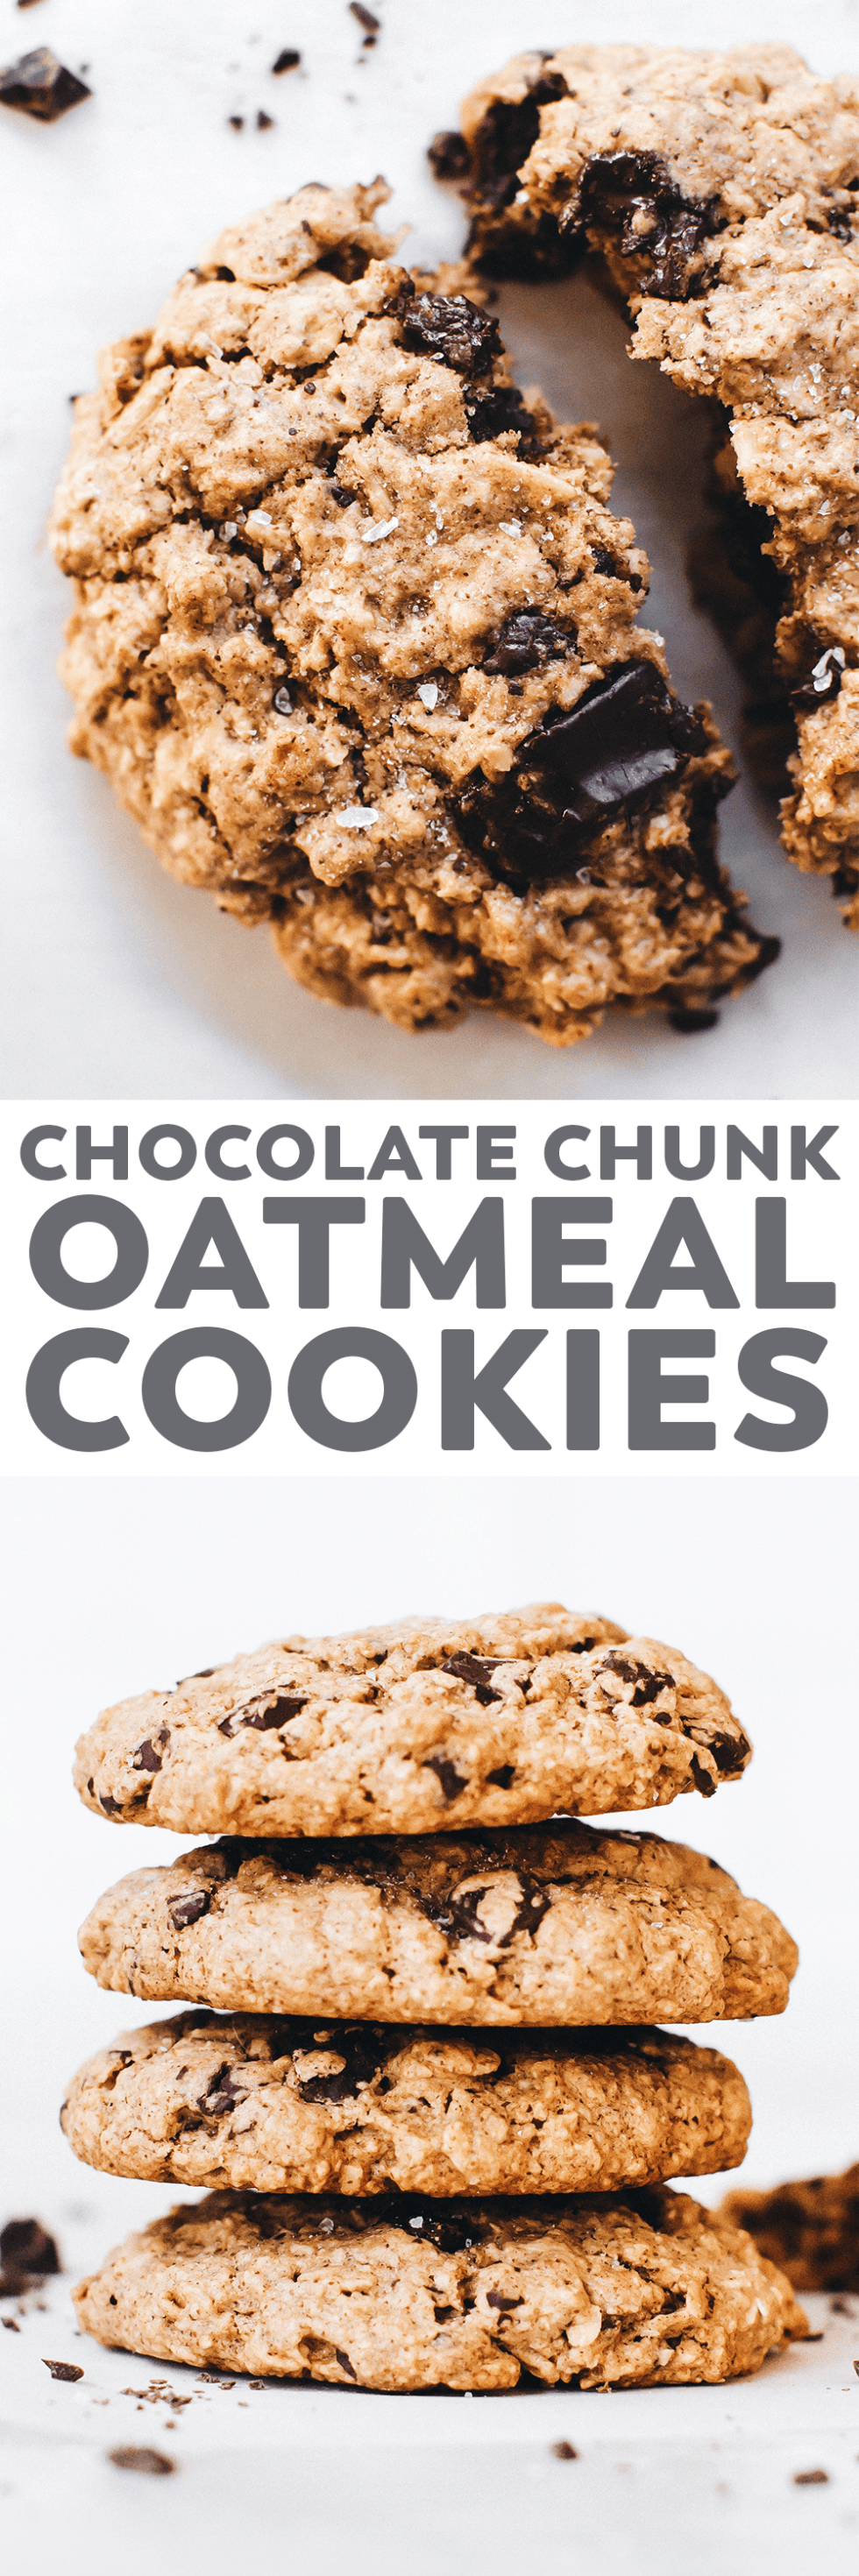 Easy vegan oatmeal cookies studded with dark chocolate chunks and the perfect crunchy on the outside, tender on the inside texture! #vegan #glutenfree #oilfree #cookies #healthy #baking #recipe